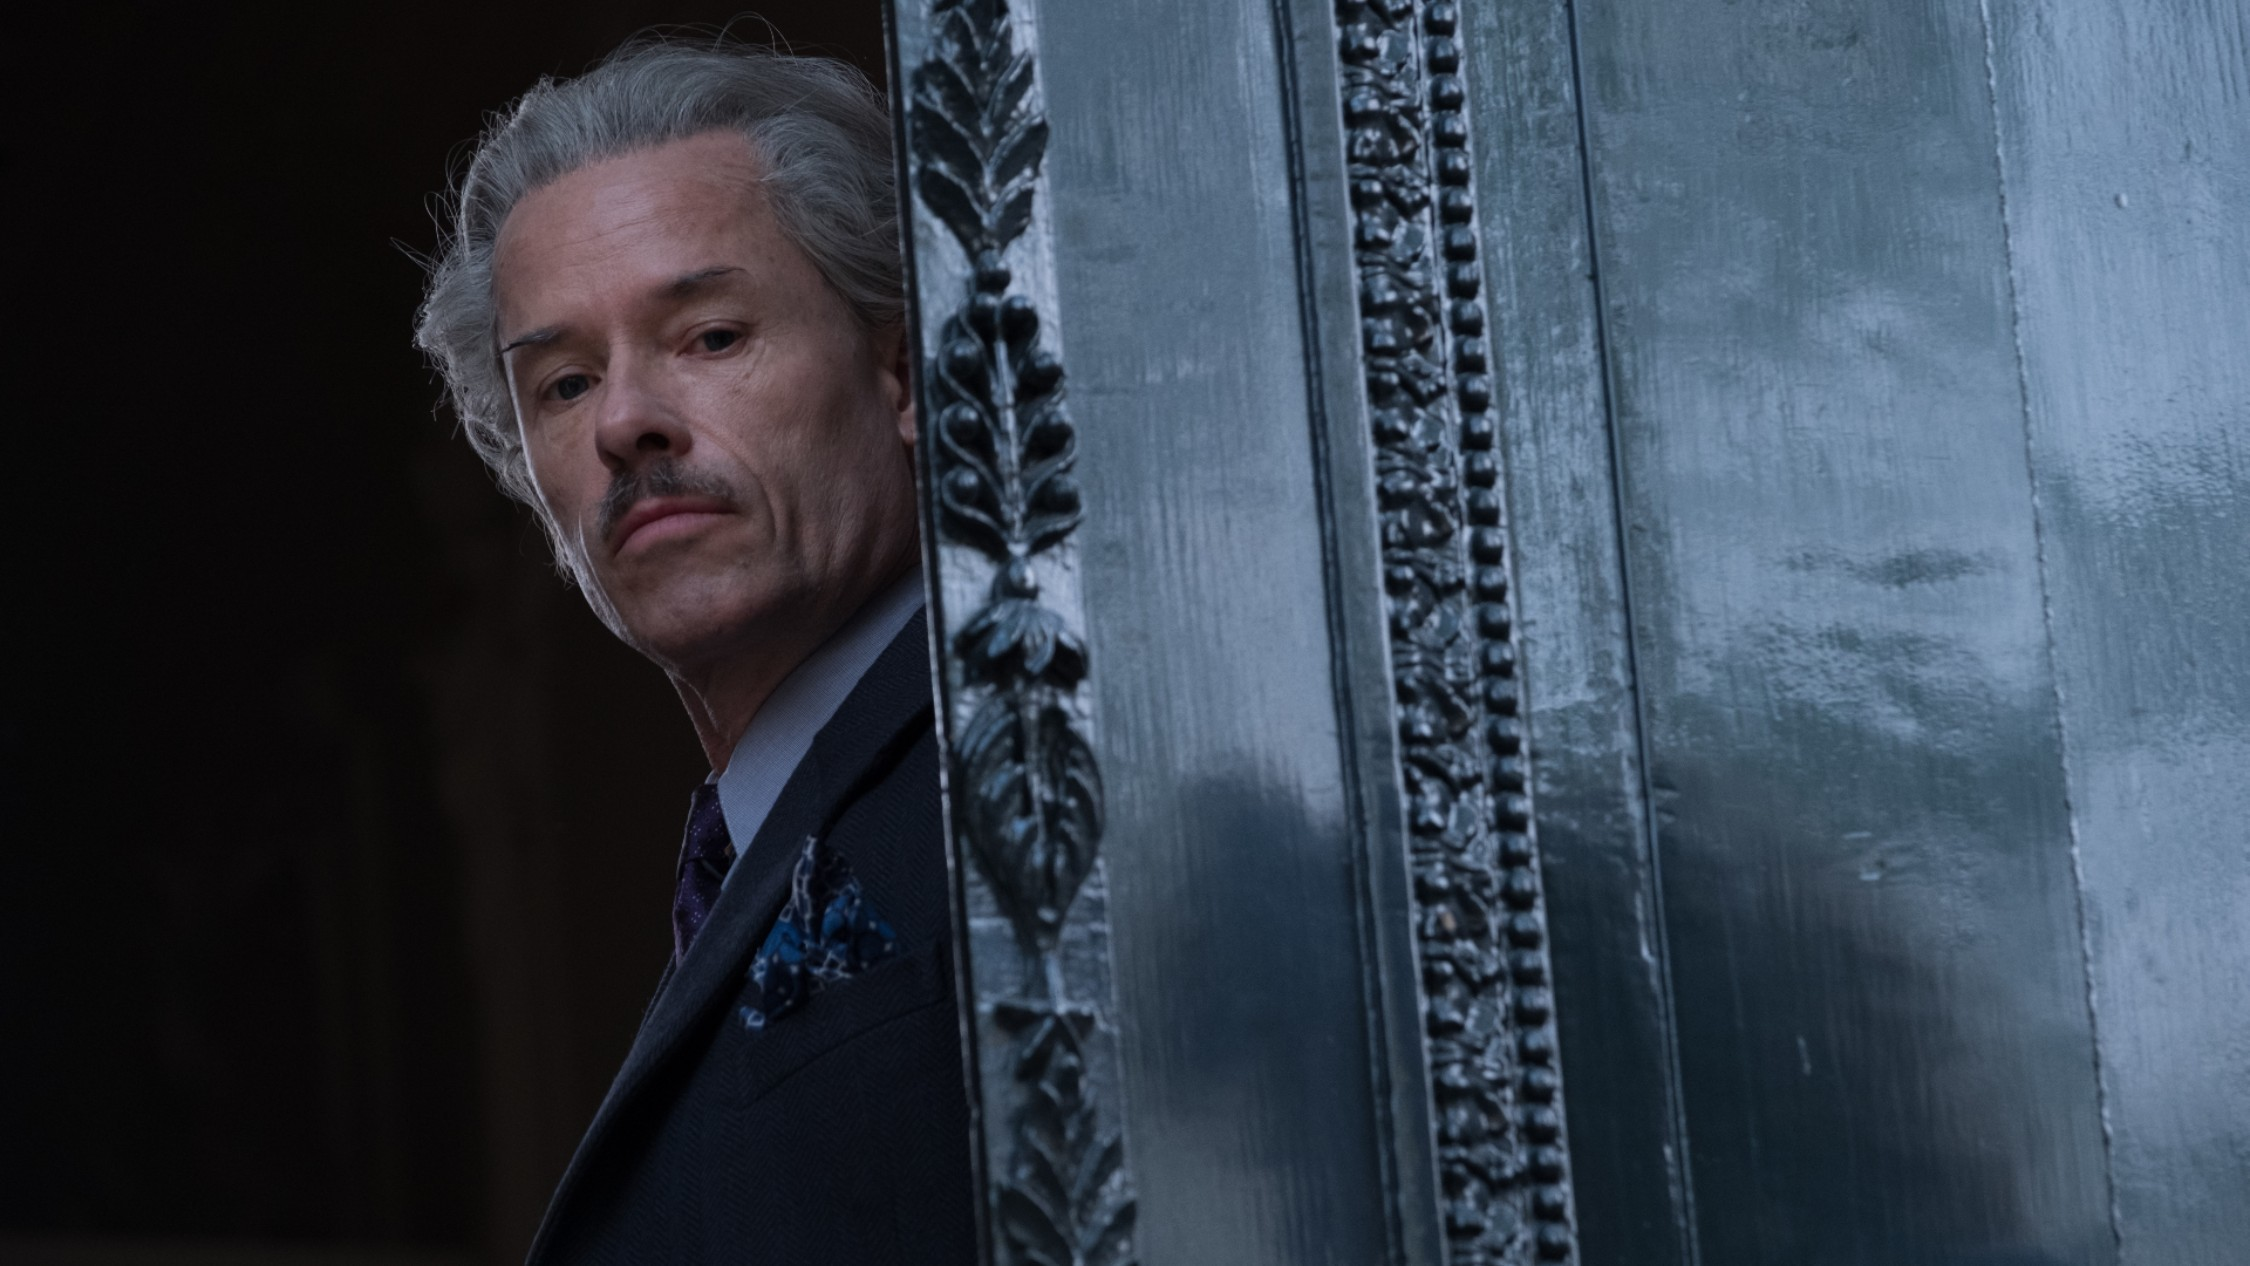 Guy Pearce with grey hair and a moustache peers out from behind an ornate door in JIFF film The Last Vermeer